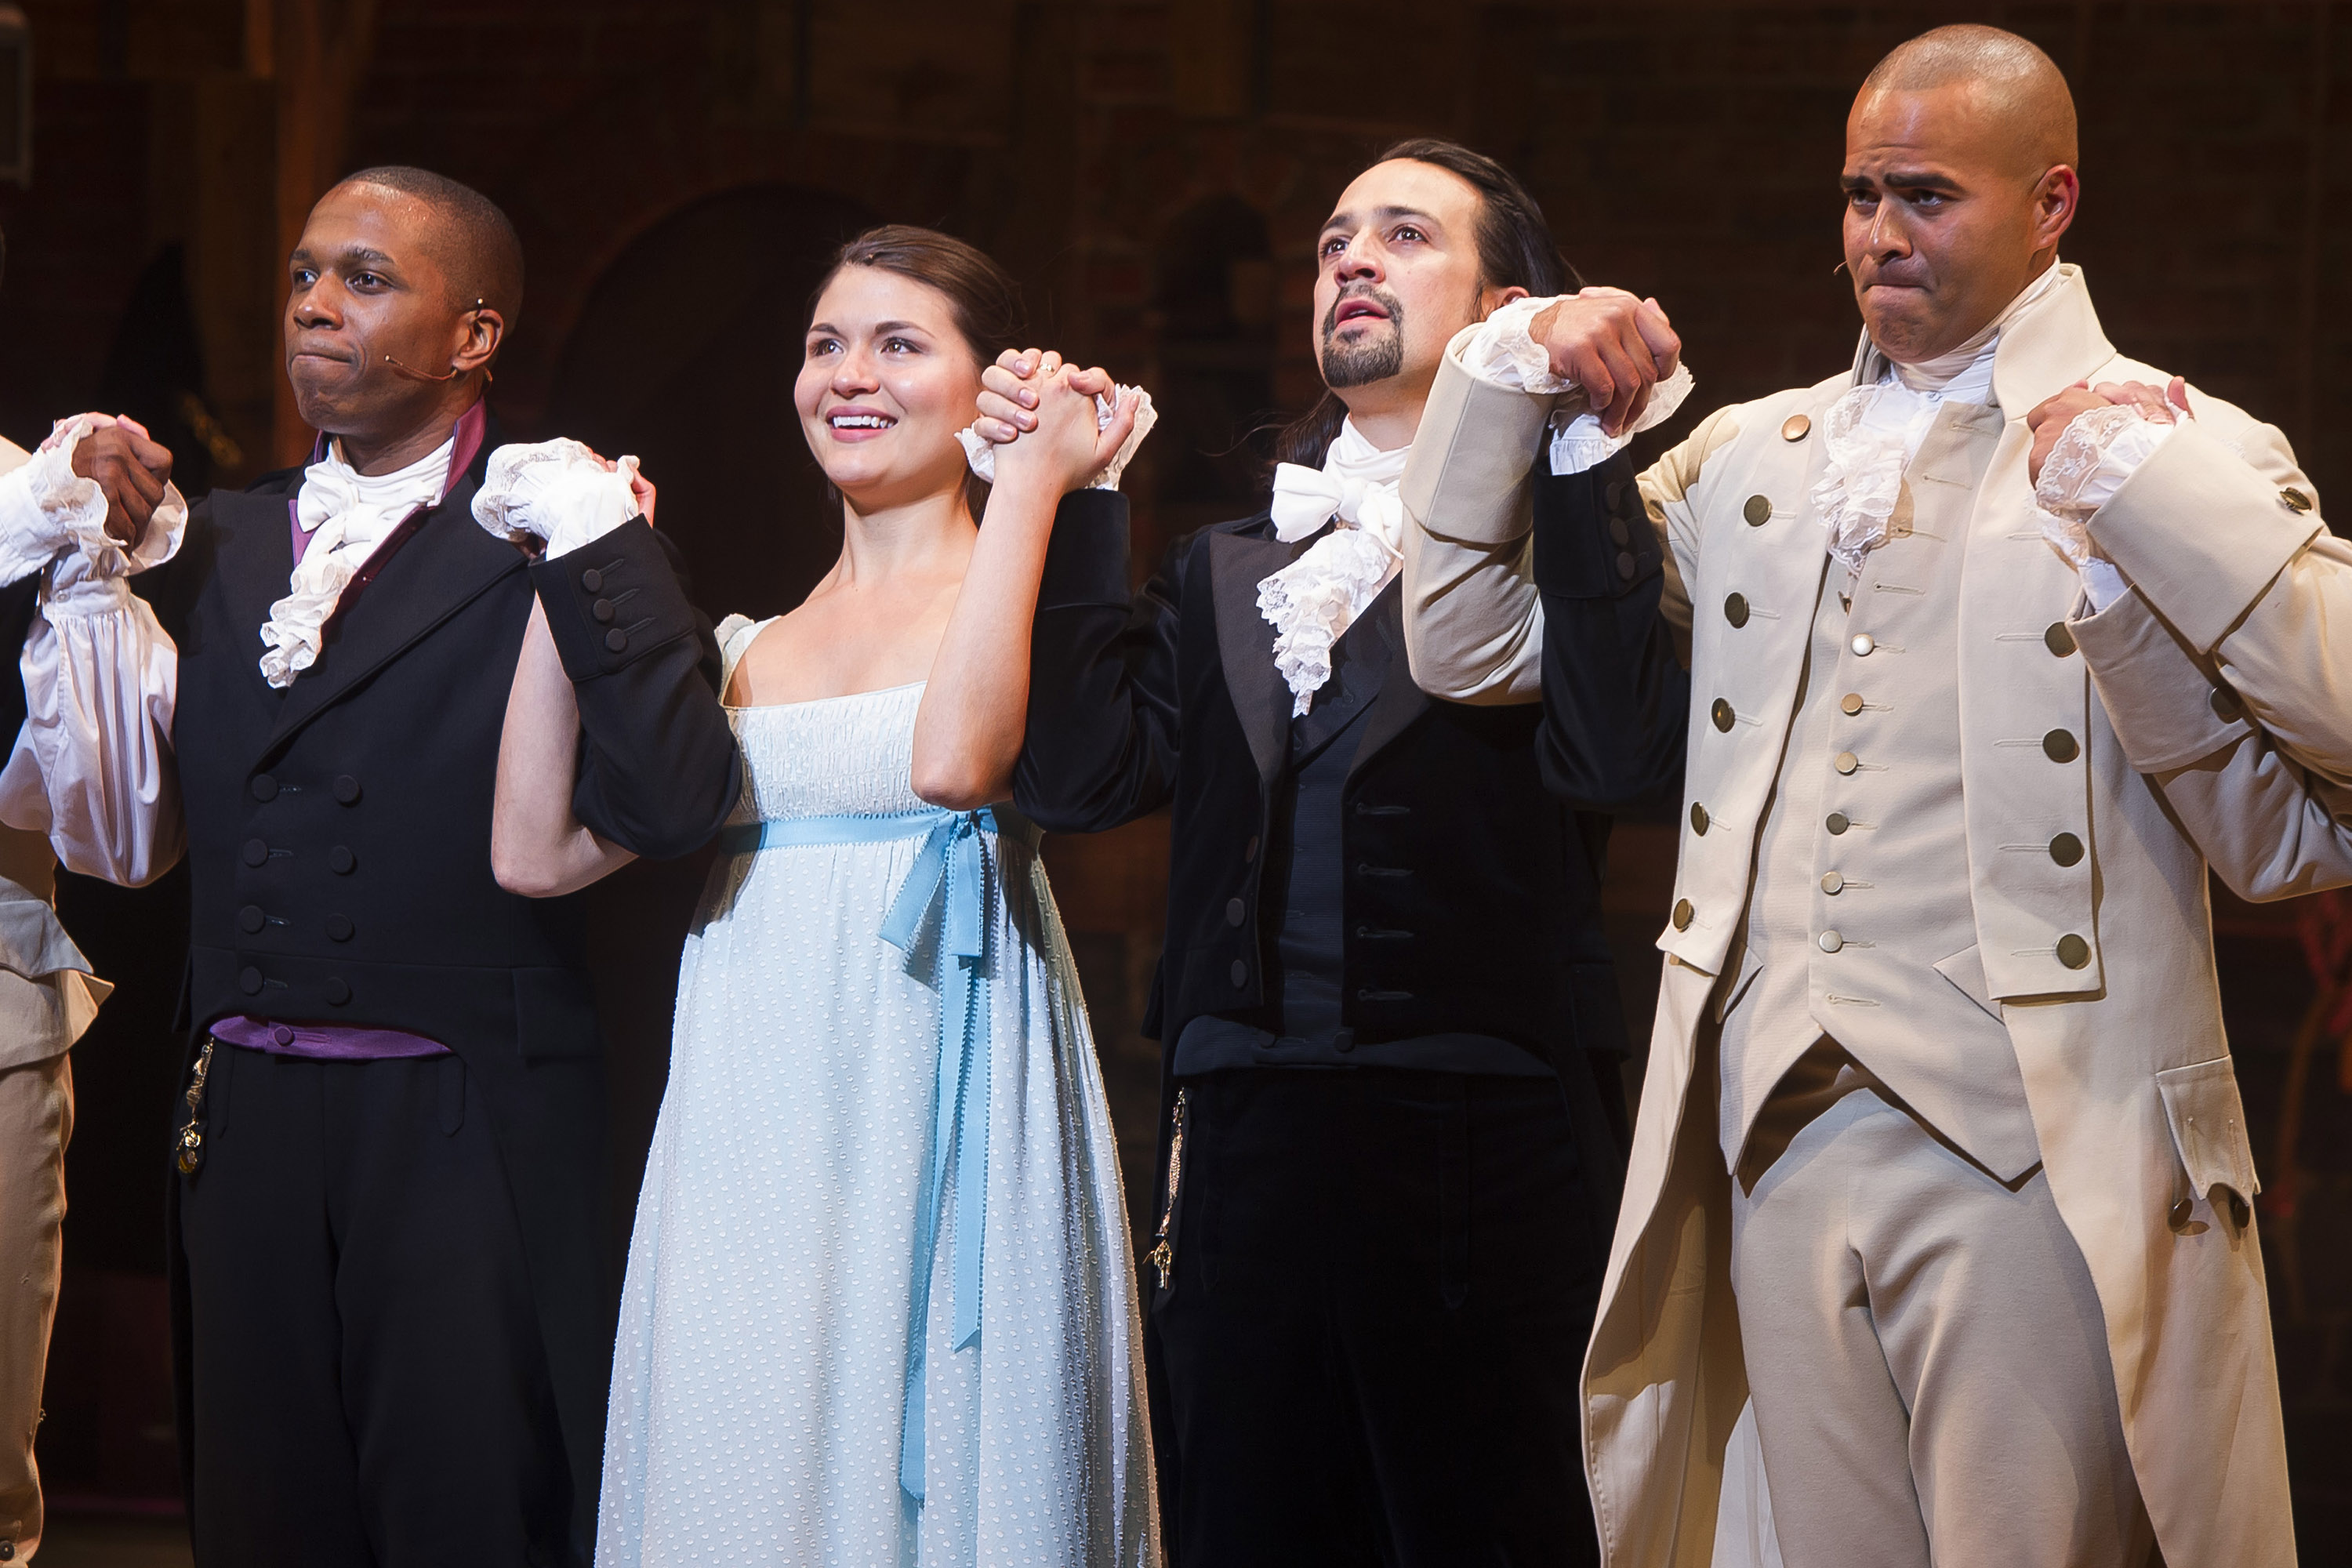 """20150806 In this Thursday, Aug. 6, 2015, file photo, Leslie Odom Jr., left, Phillipa Soo, Lin-Manuel Miranda and Christopher Jackson appear at the curtain call following the opening night performance of """"Hamilton"""" at the Richard Rodgers Theatre in New York. The production is still on Broadway, but much of the original cast members have left the show."""